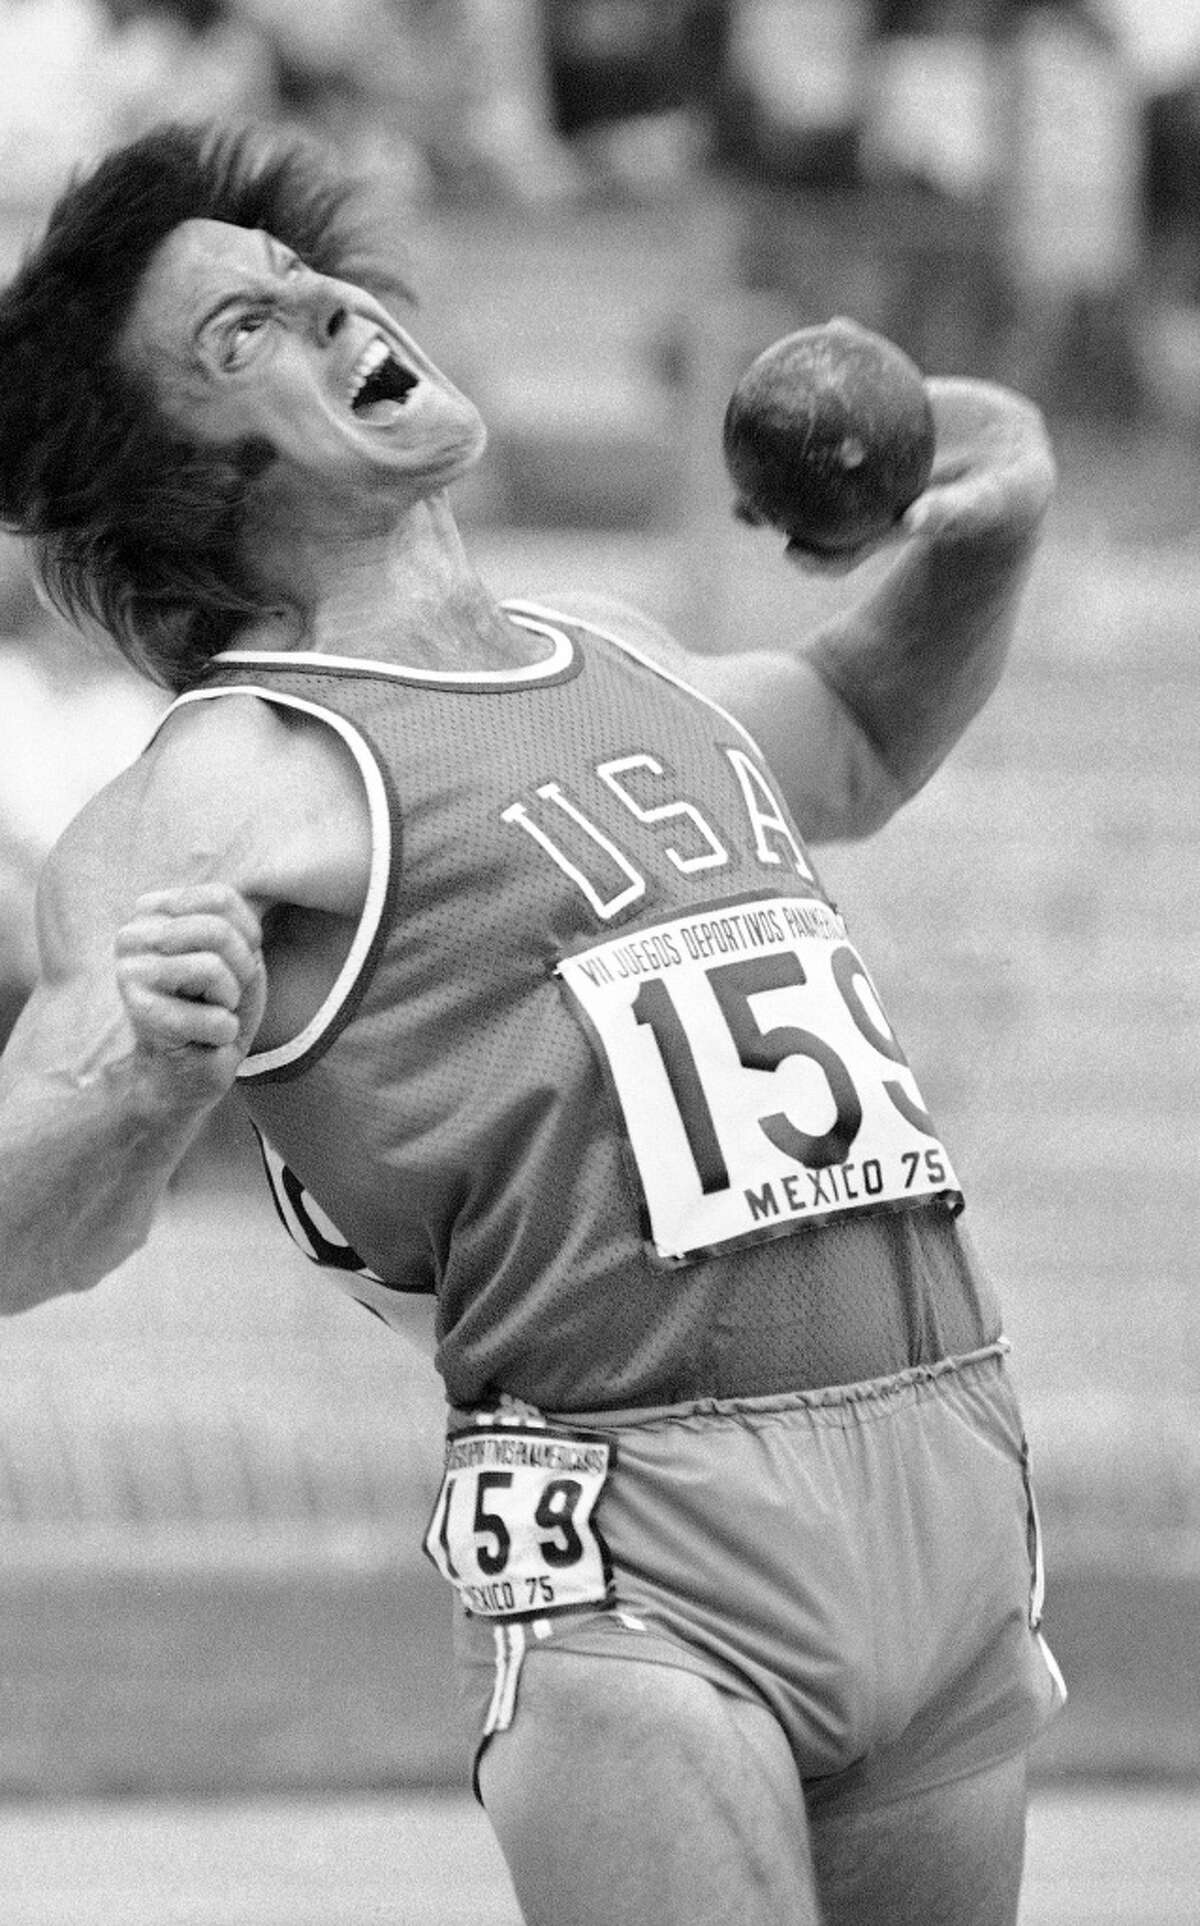 FILE - In this Oct. 11, 1975, file photo, Bruce Jenner, of the United States, strains as he throws the shot put in the decathlon competition at the Pan Am Games in Mexico City. Jenner made his debut as a transgender woman on the cover for the July 2015 issue of Vanity Fair. (AP Photo/File)